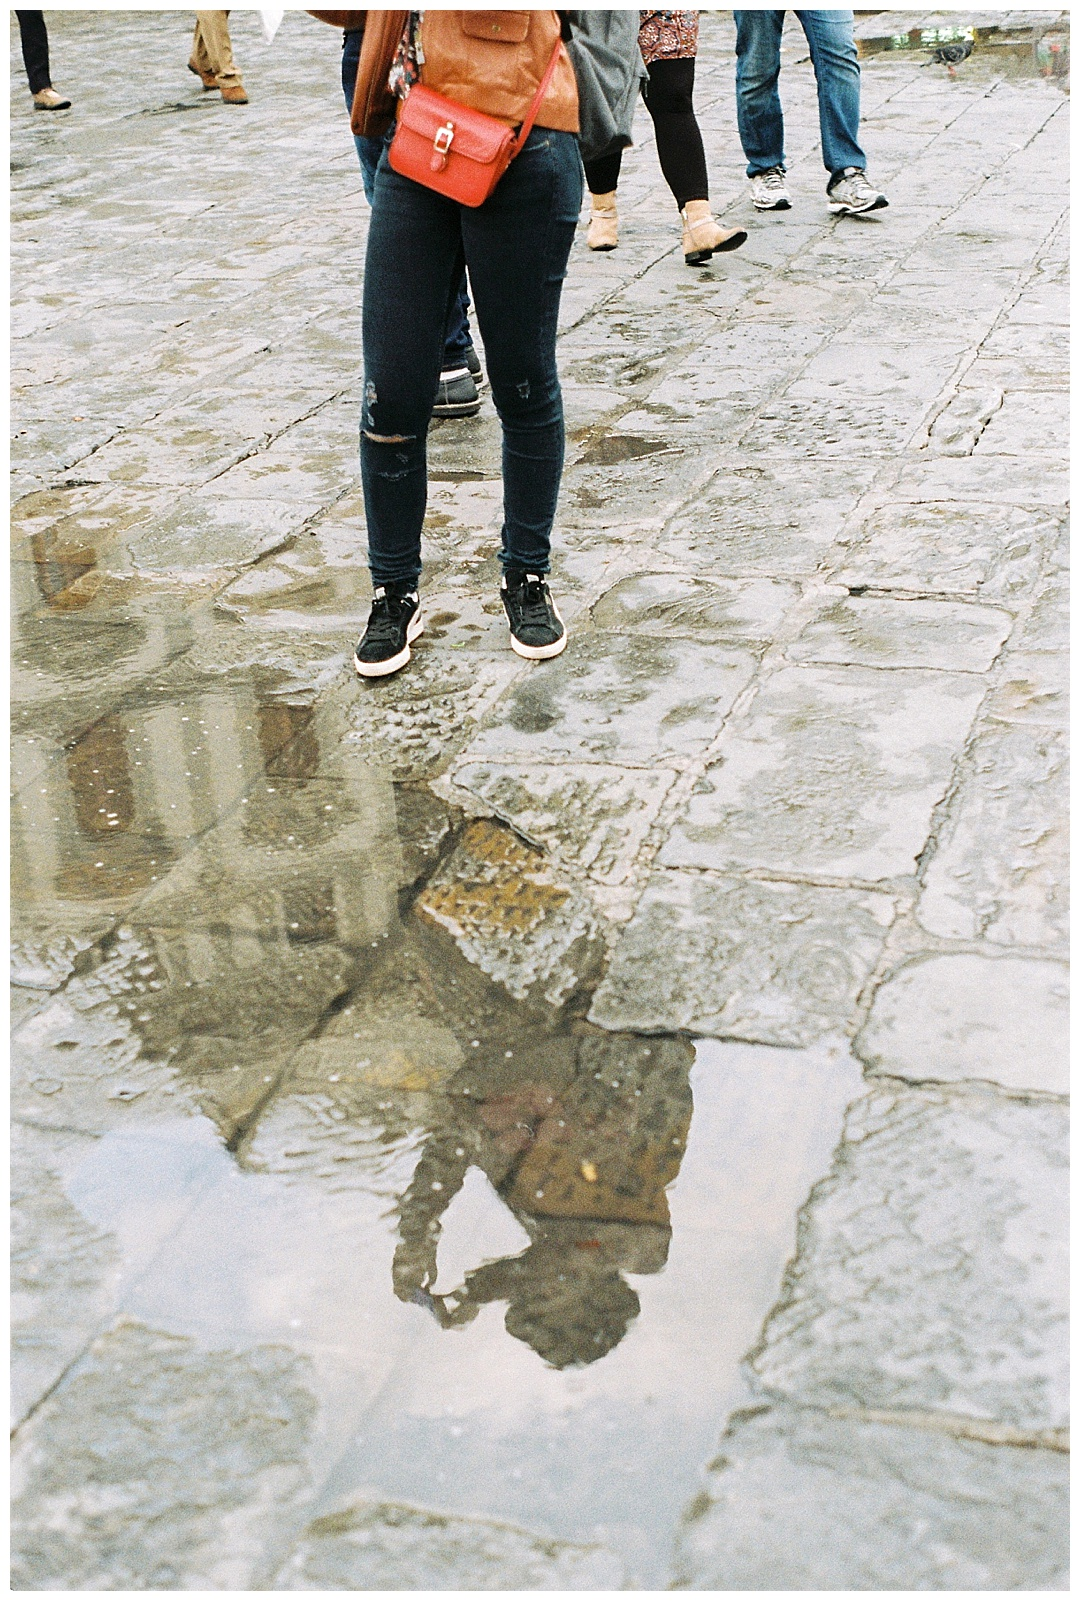 We_Can _Be_Heroes_alternative_wedding_photographer_Rome_florence_Film_0016